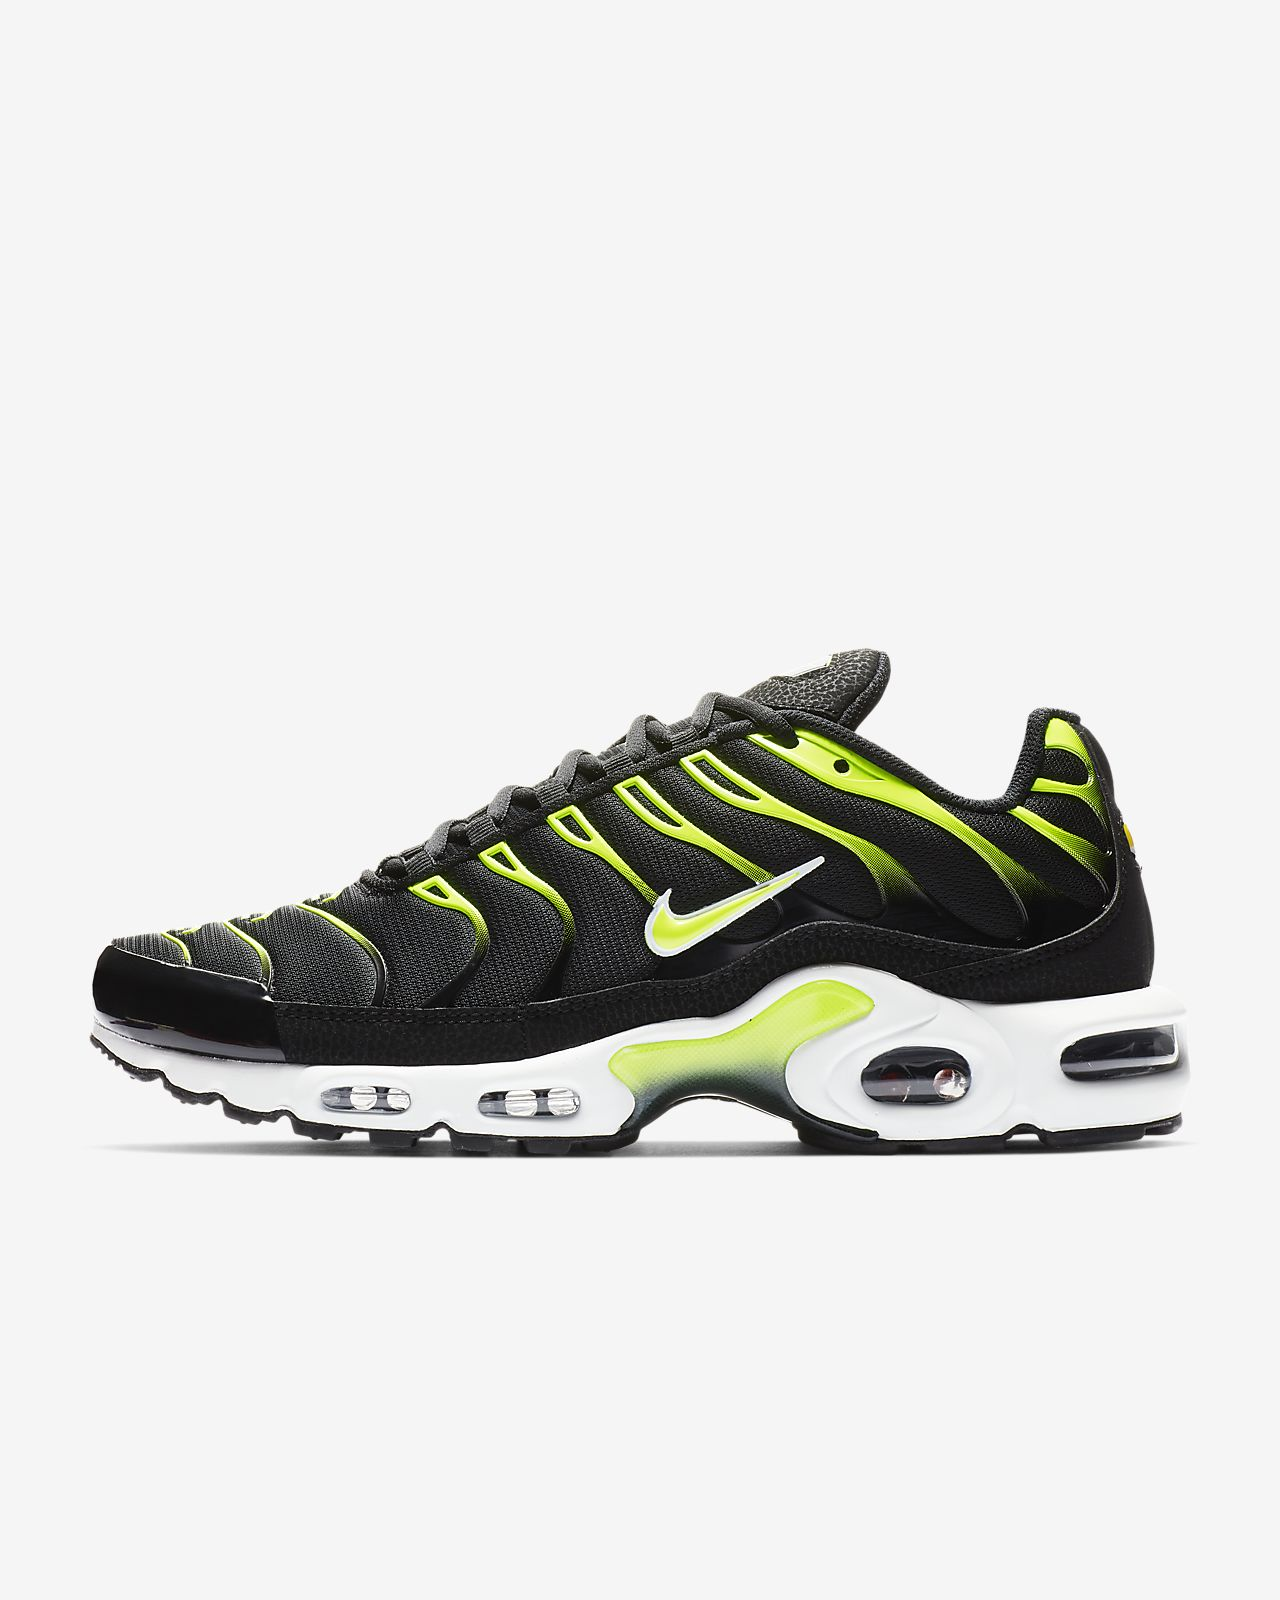 81195a30667 Nike Air Max Plus Men s Shoe. Nike.com GB